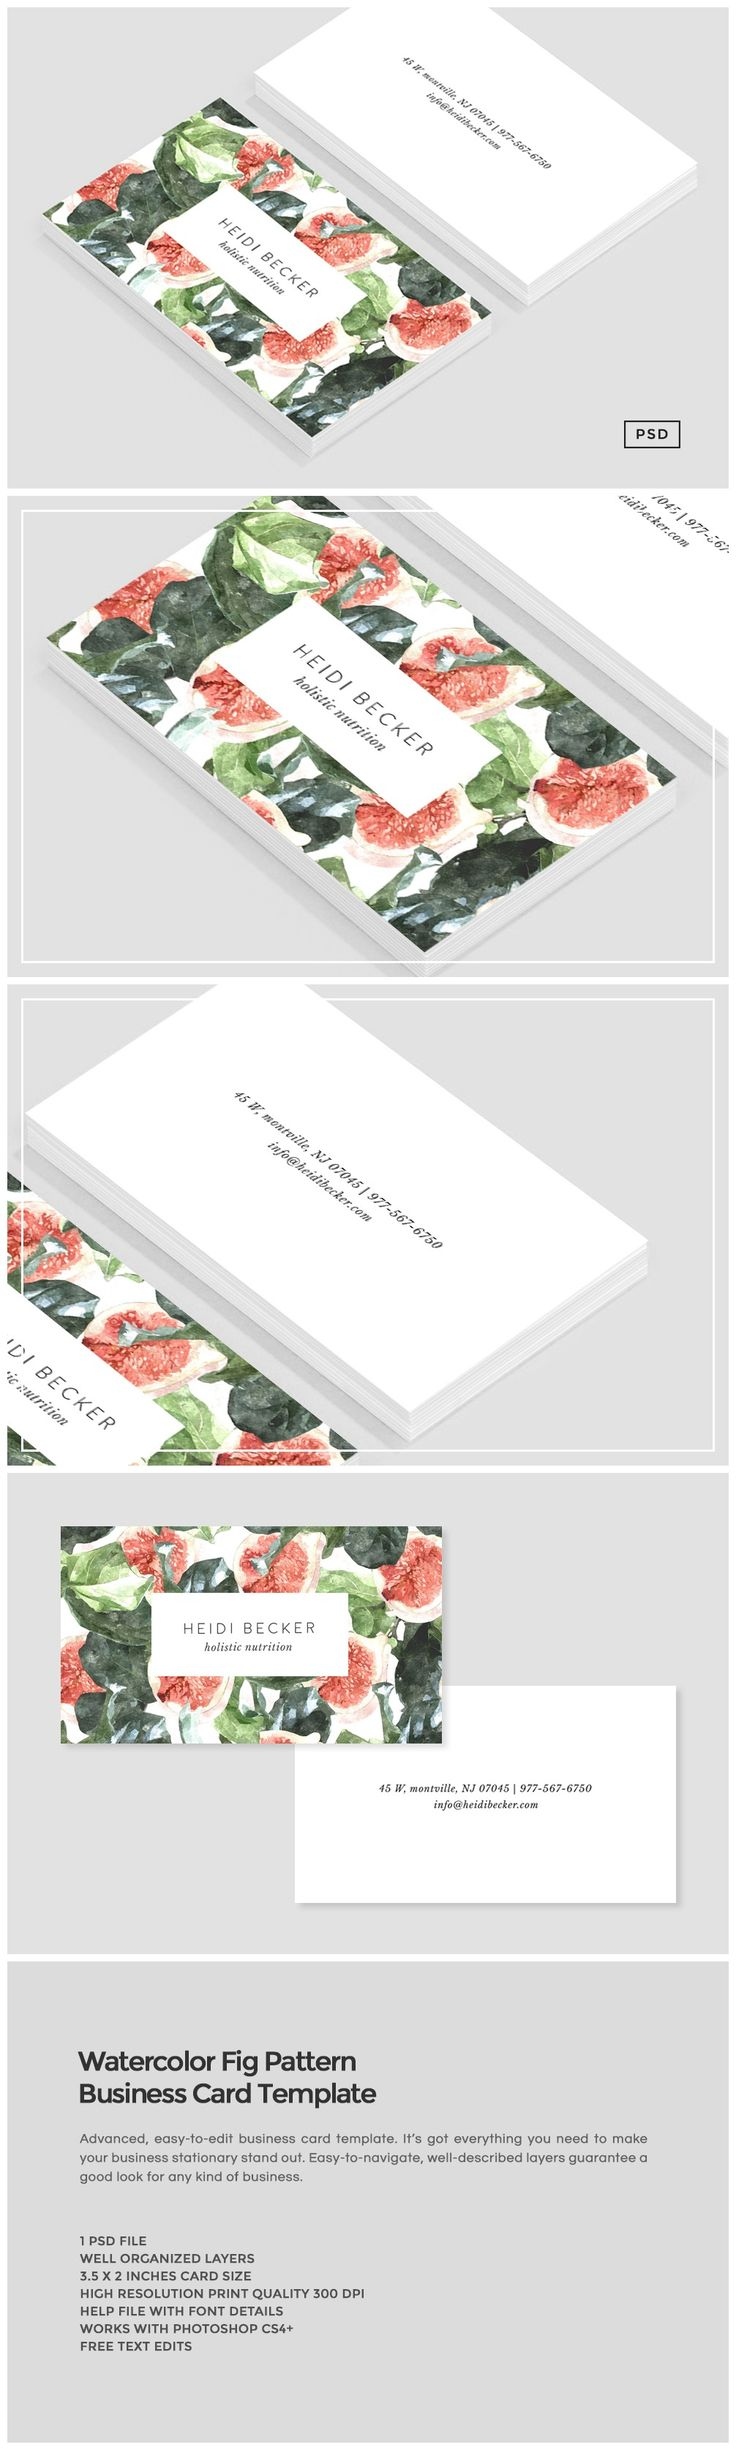 393 best business card images on pinterest business card design watercolor fig pattern business card free business card designfree reheart Gallery